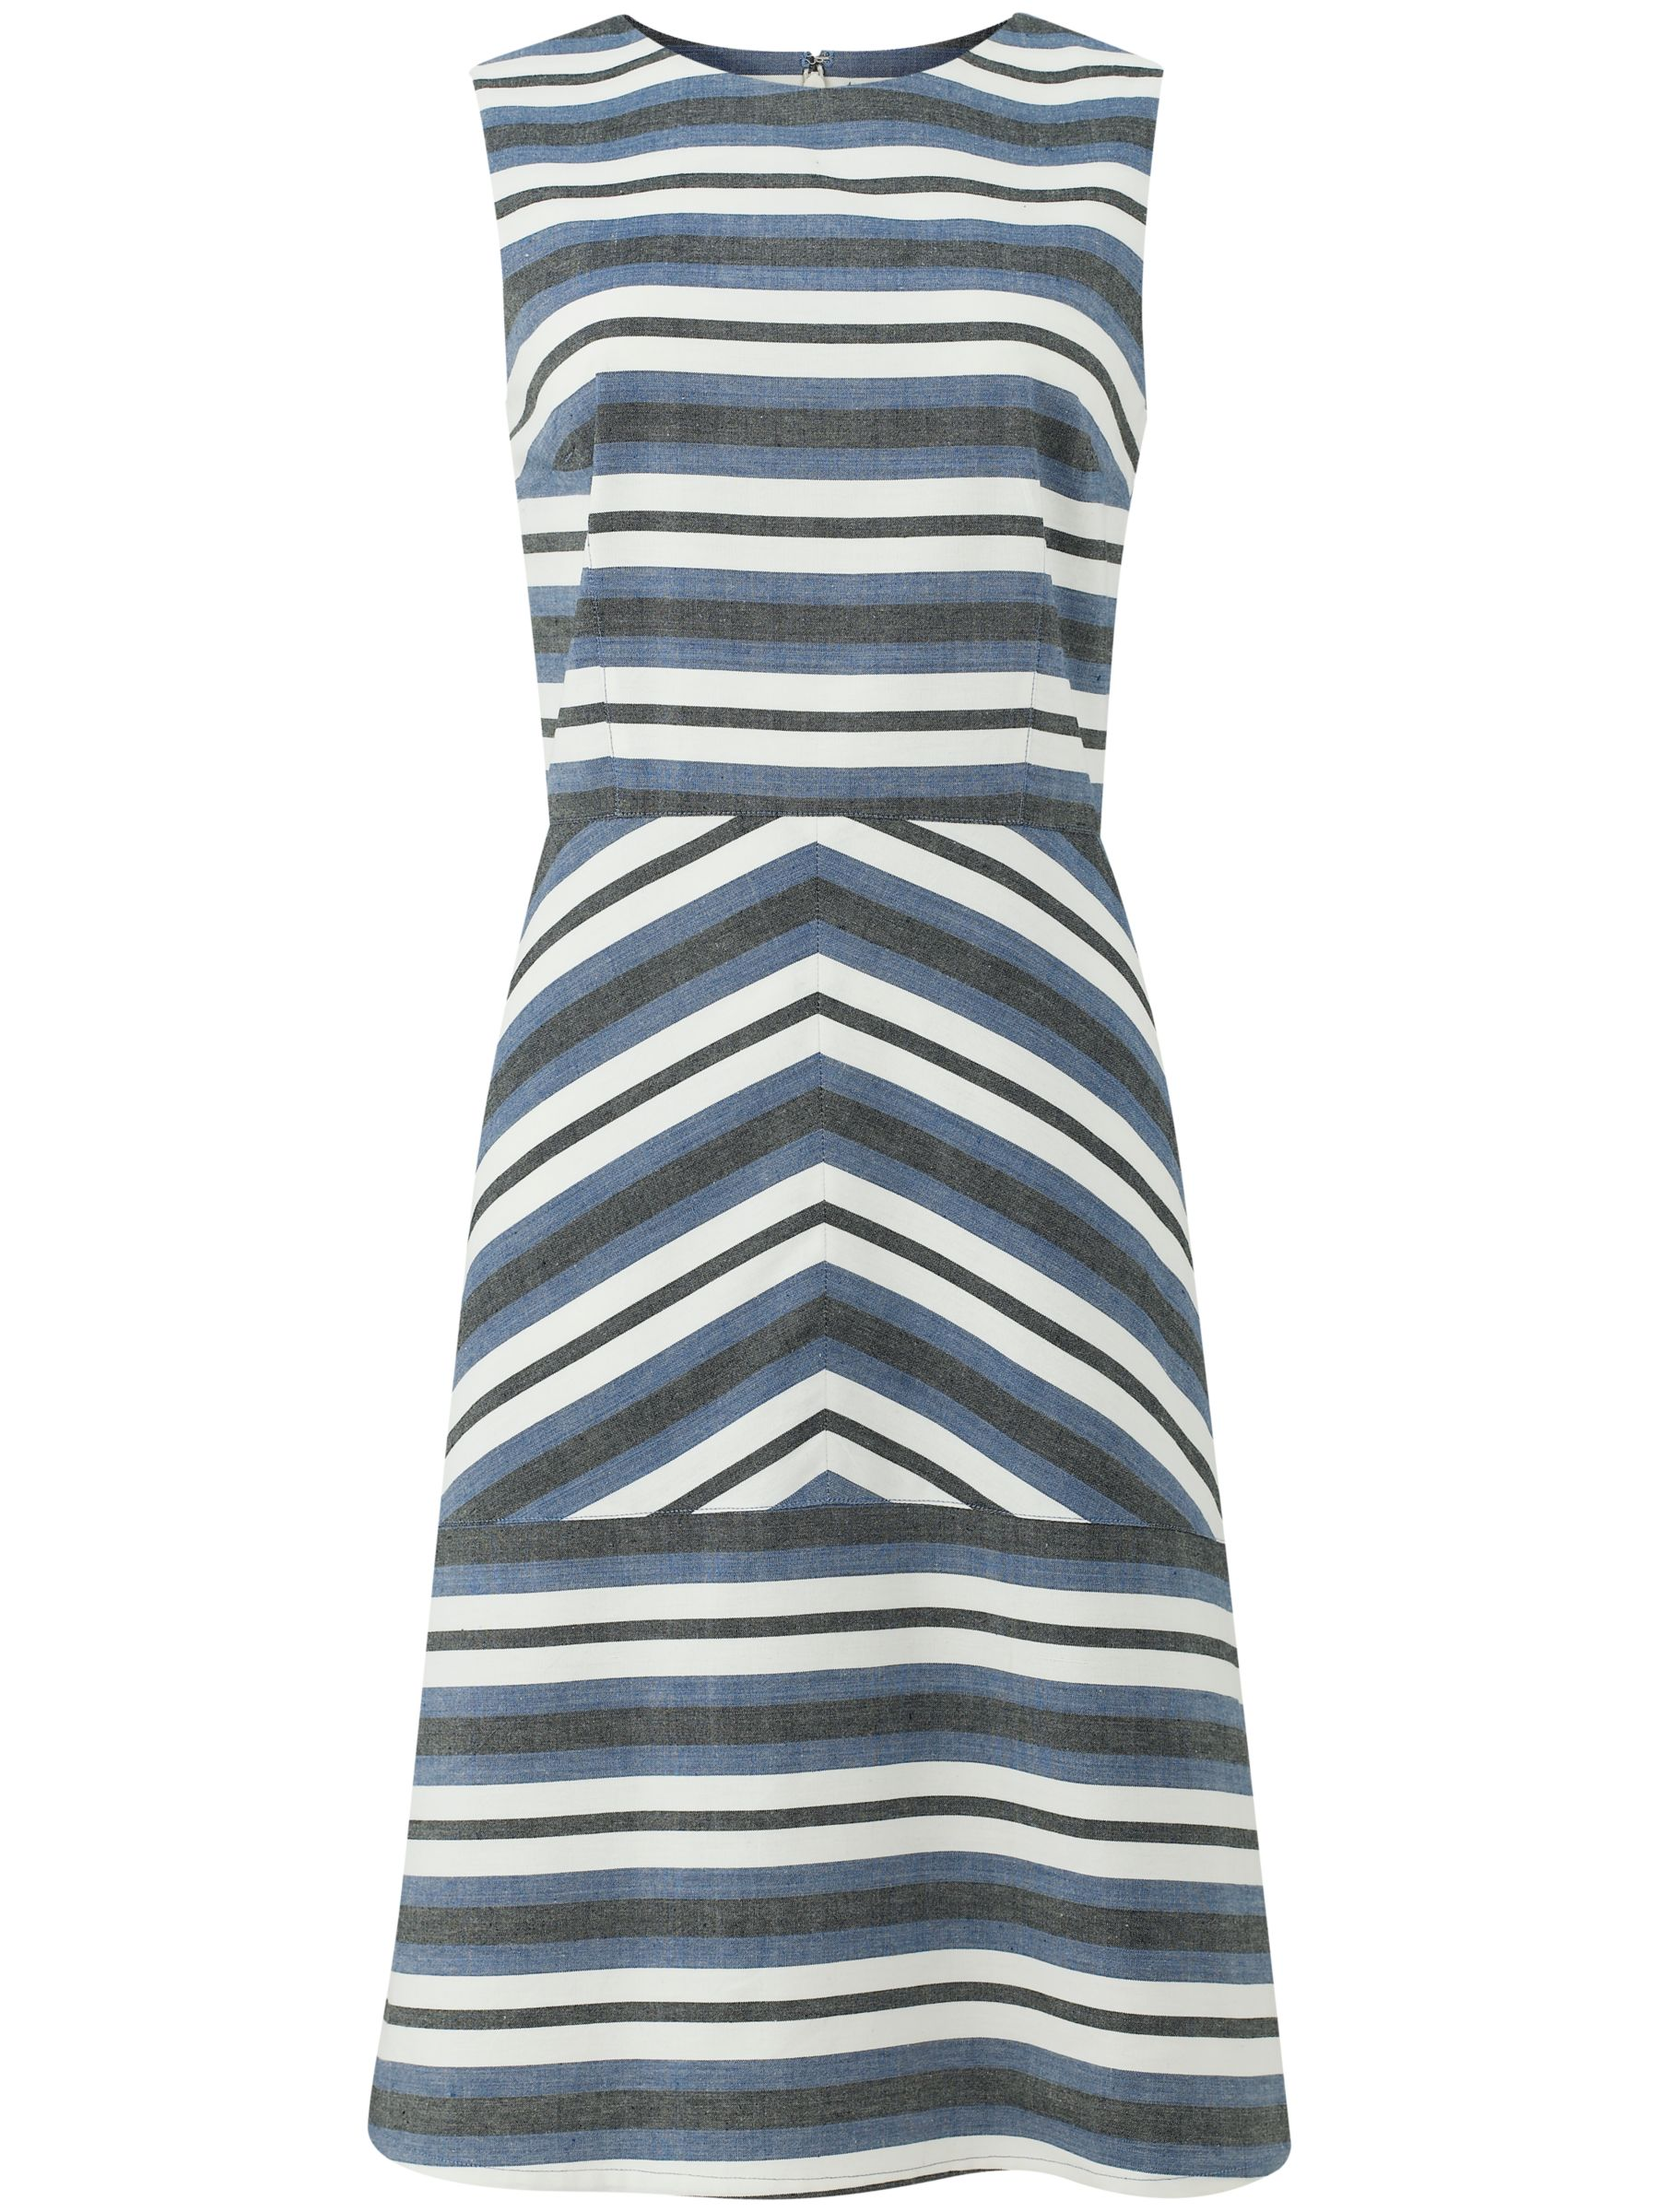 people tree paloma panel dress blue, people, tree, paloma, panel, dress, blue, people tree, 8|14|12|10, women, womens dresses, 1911371